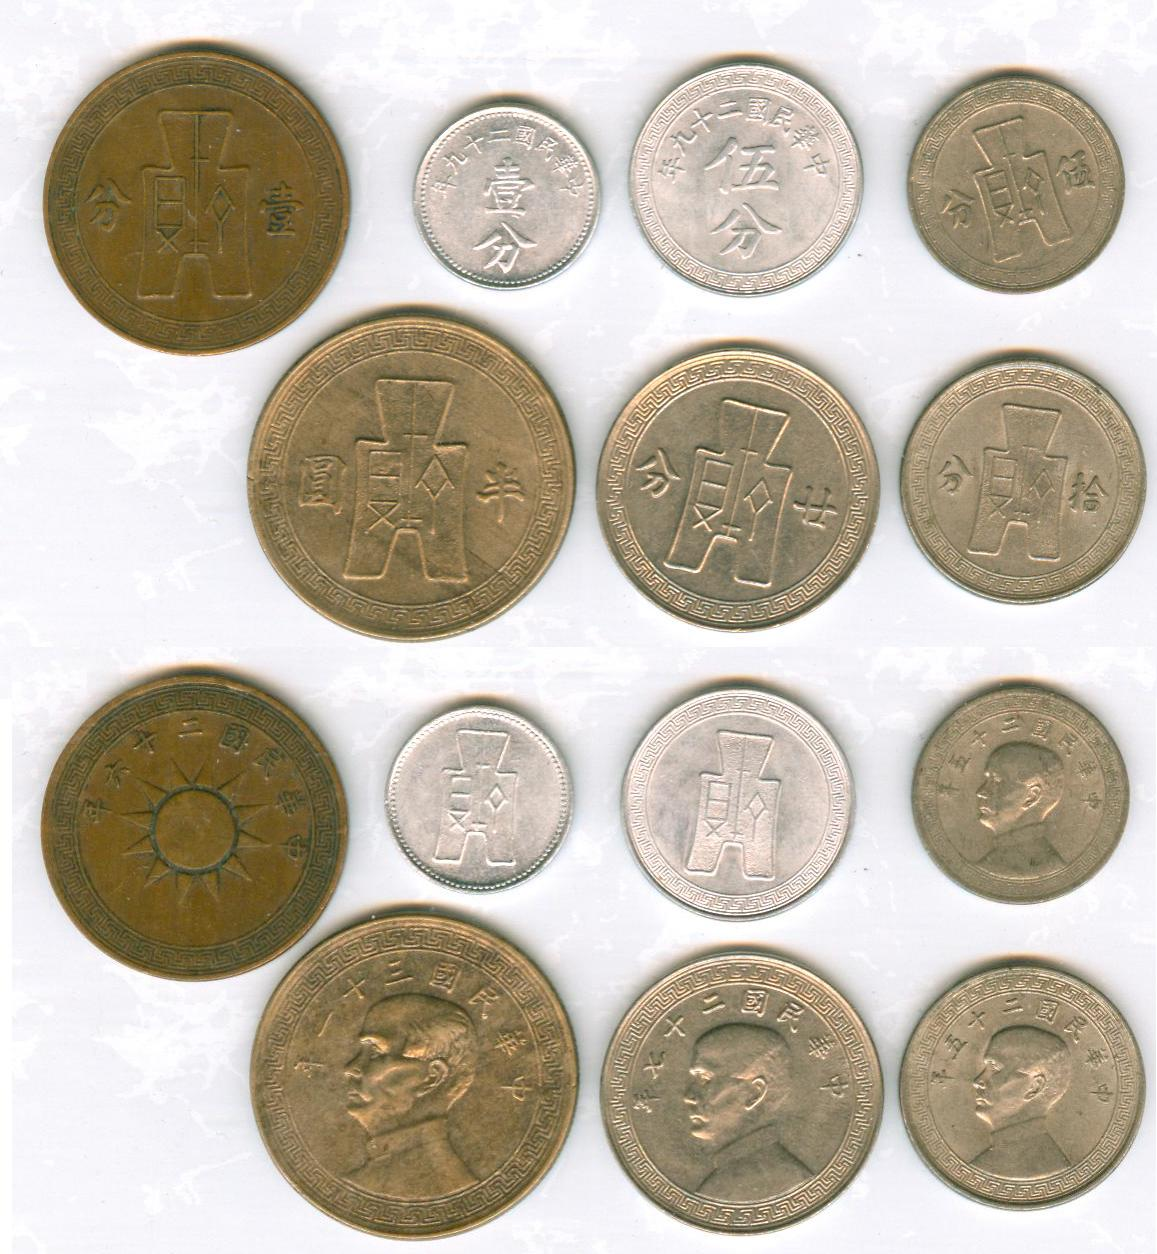 K5801, Set of 7 Pcs legal coins of Republic of China, 1940's